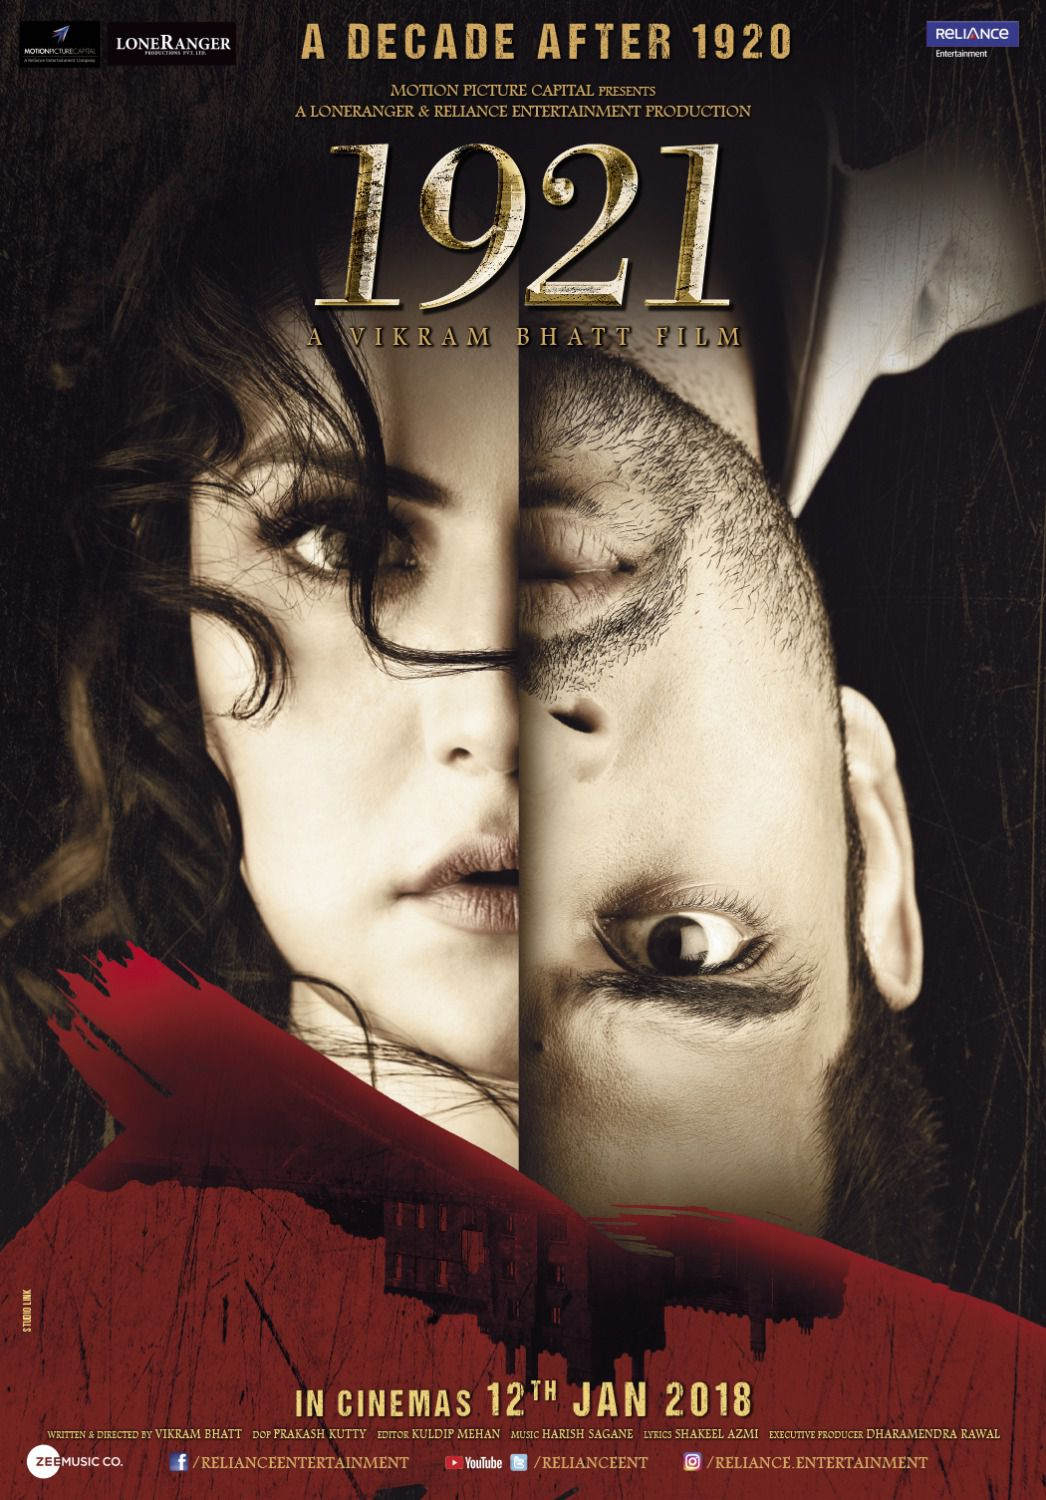 1921 horror film by Vikram Bhatt - Ayush (Karan Kundrra) and Rose (Zareen Khan)